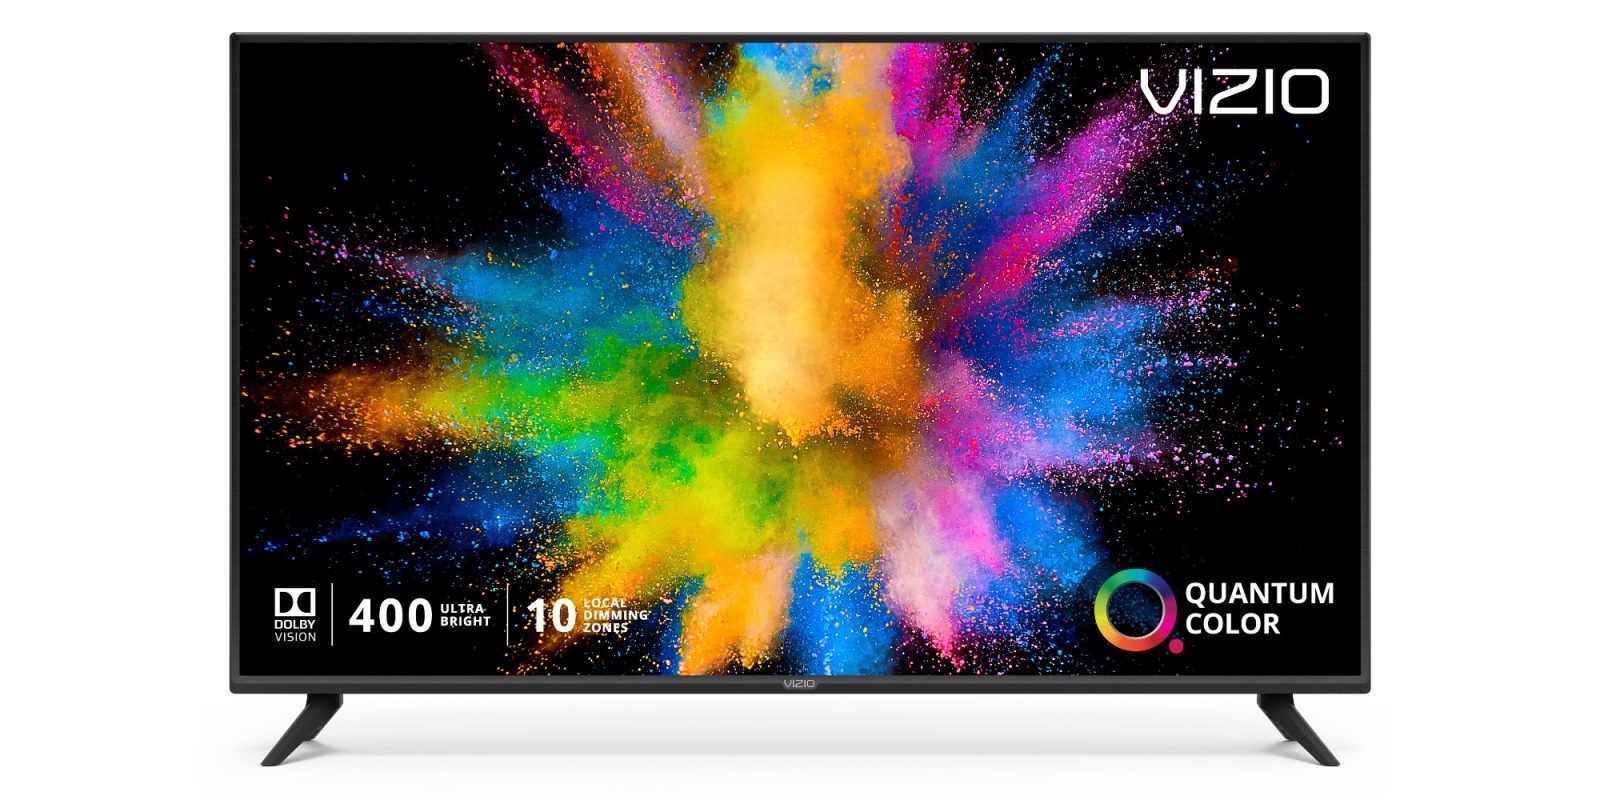 AirPlay, HomeKit, 4K, and HDR are a few highlights on VIZIO's $378 55-inch UHDTV